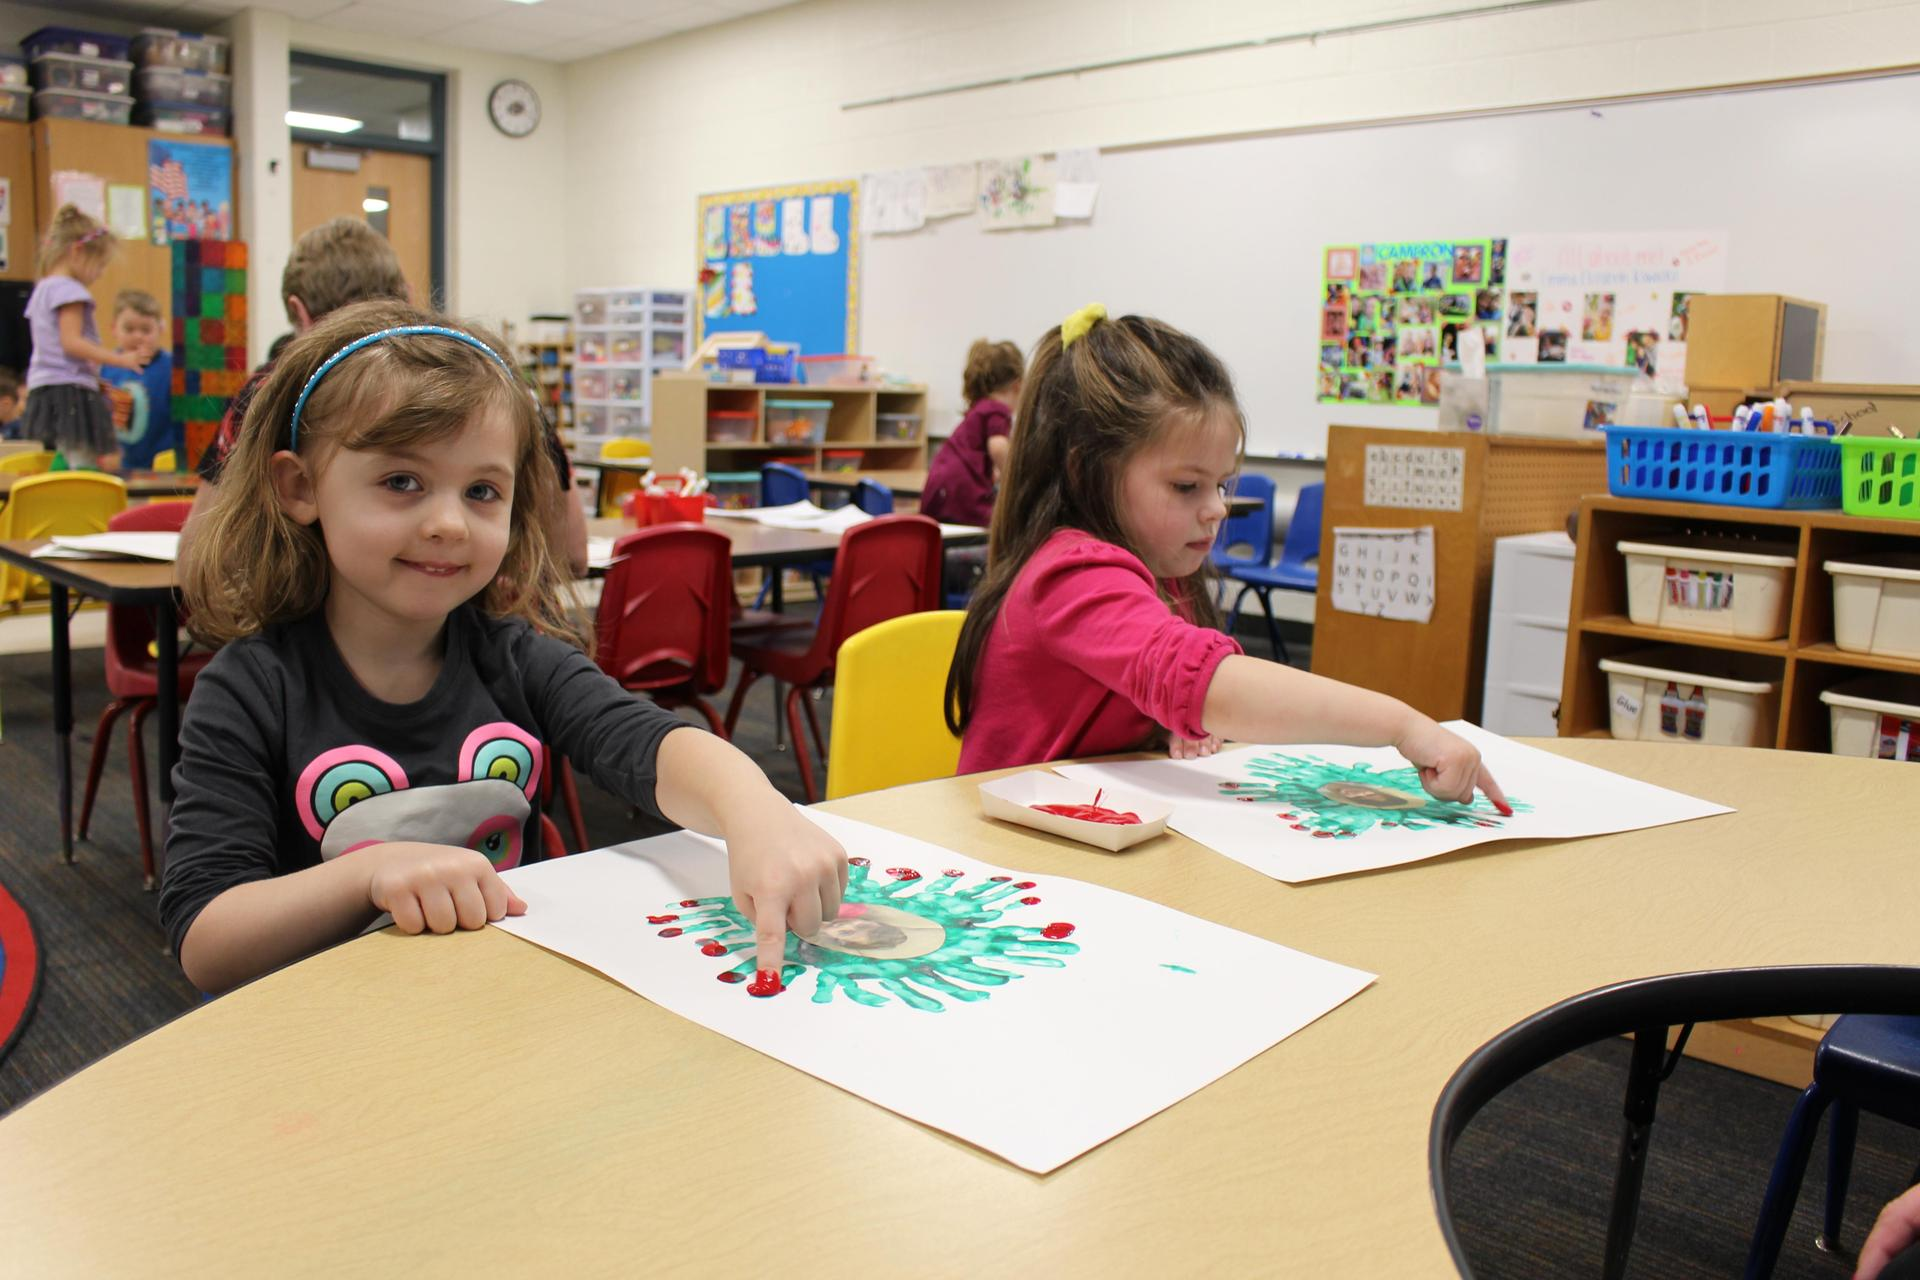 girls paint with fingerpaint at desk